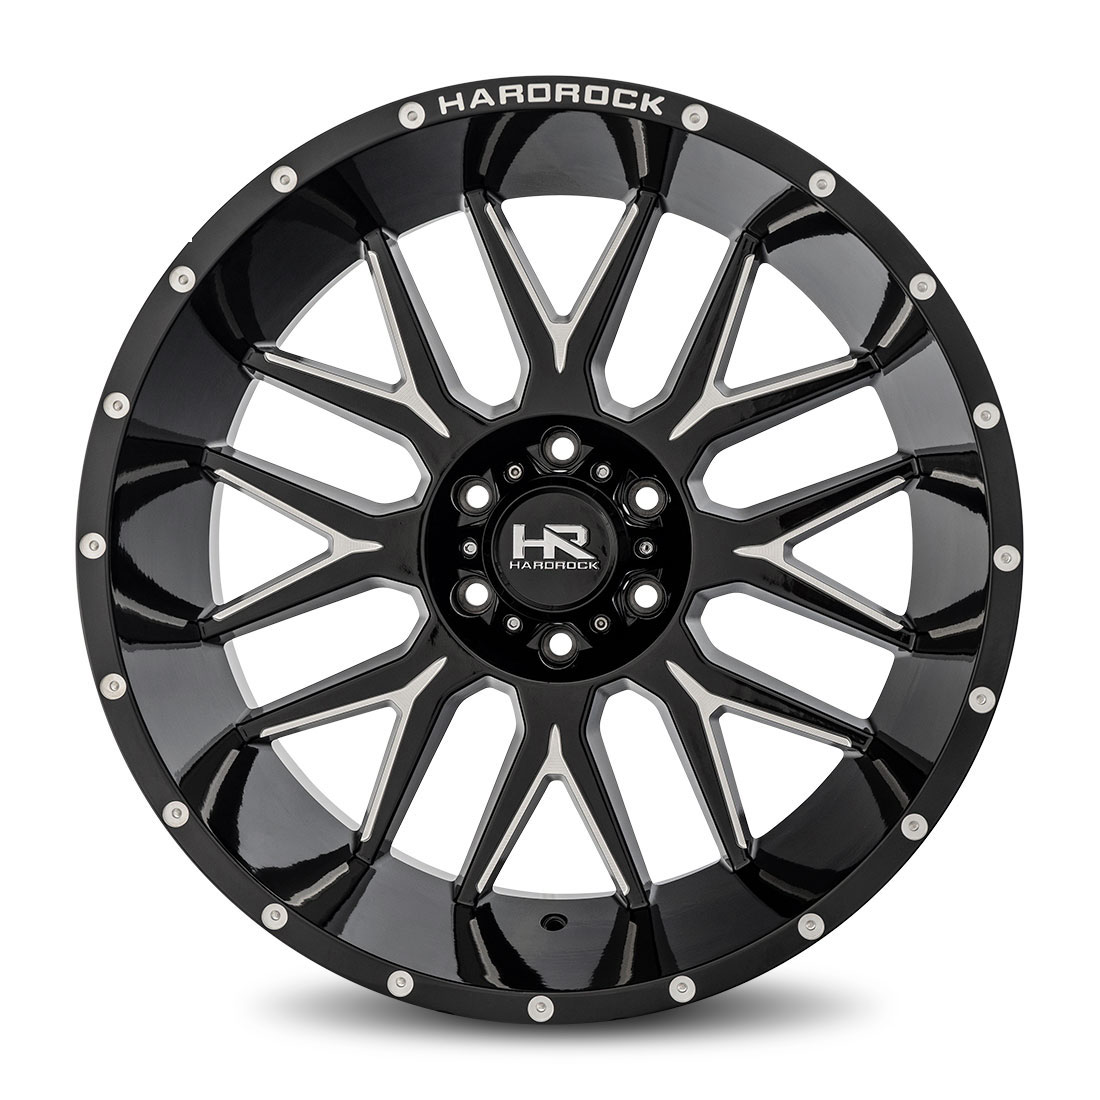 Hardrock Offroad Wheels H500 Affliction-Xposed - Gloss Black Milled - 22x12